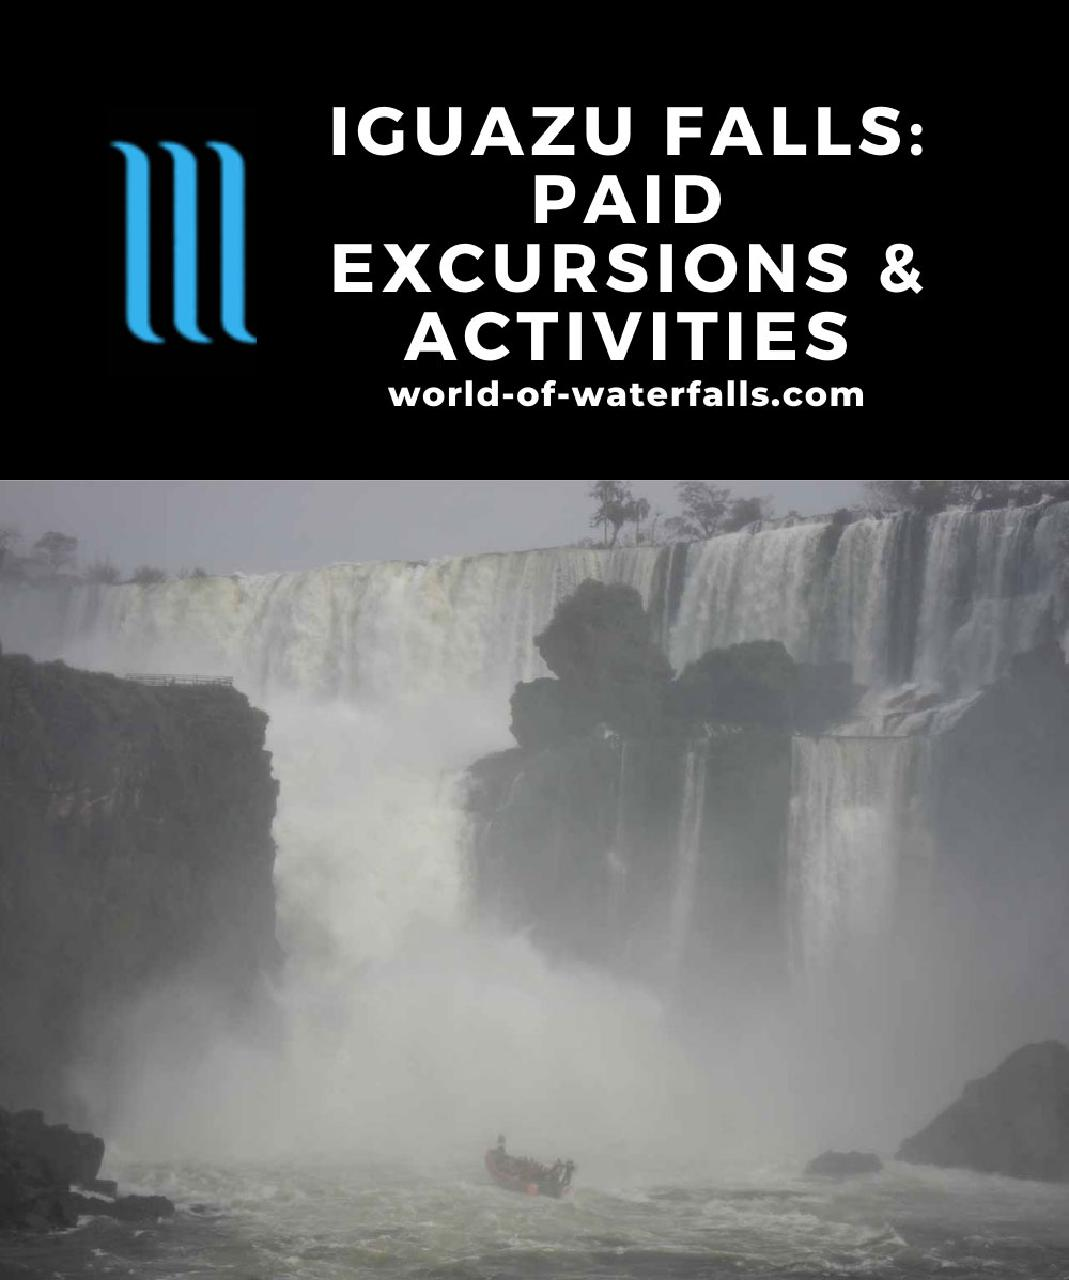 Iguazu Falls: Paid Excursions and Activities